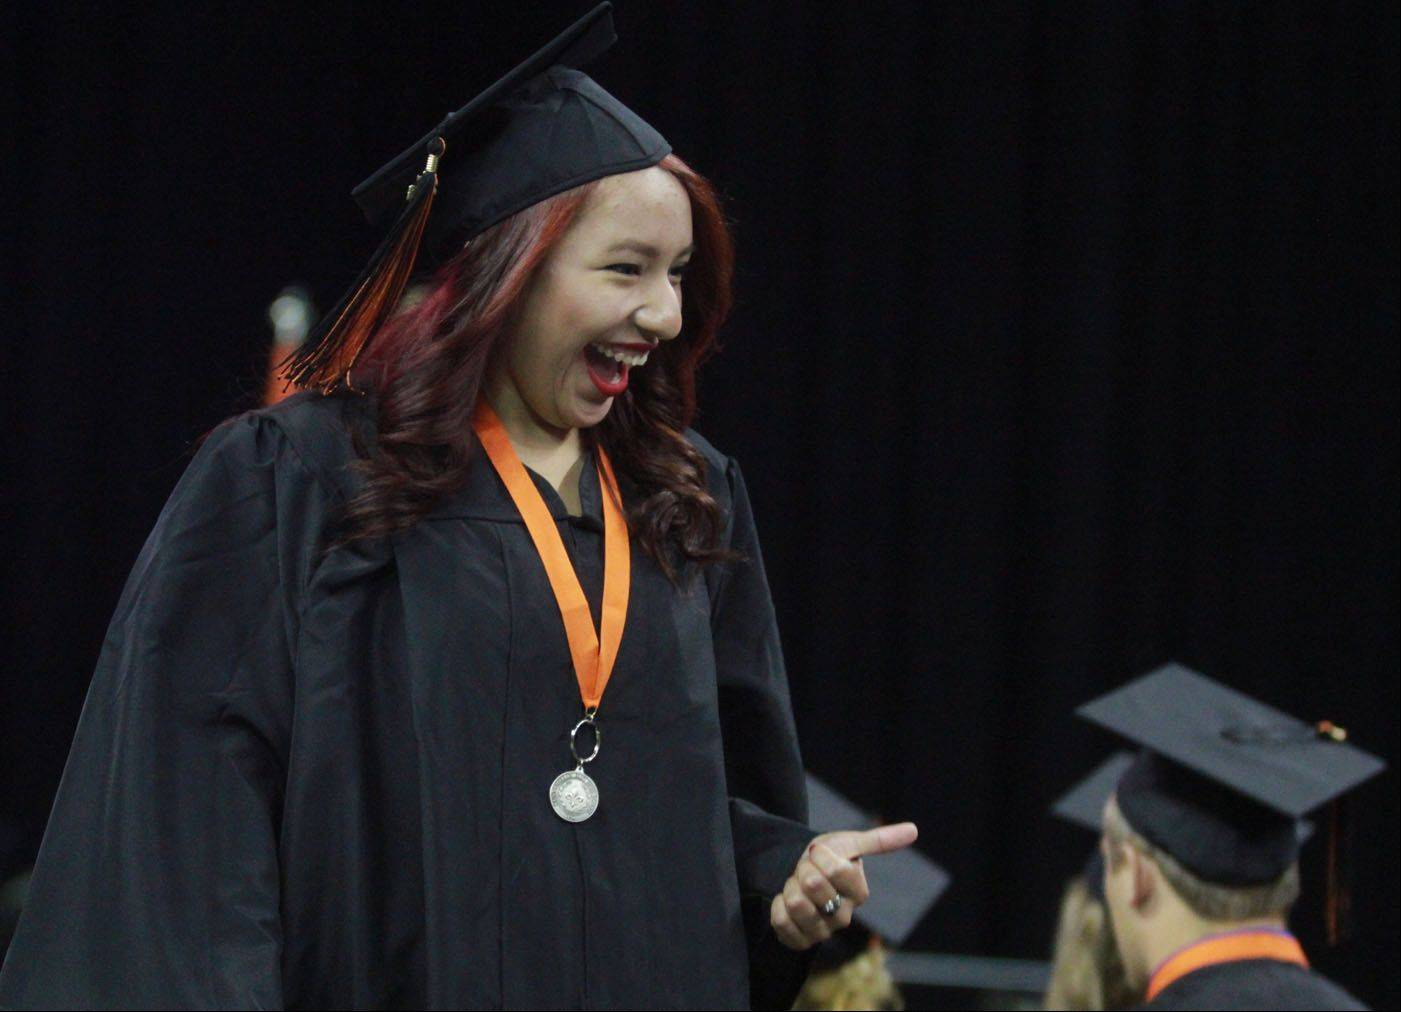 Images from the St Charles East High School commencement ceremony Sunday, May 26, 2013 at the Sears Centre in Hoffman Estates.